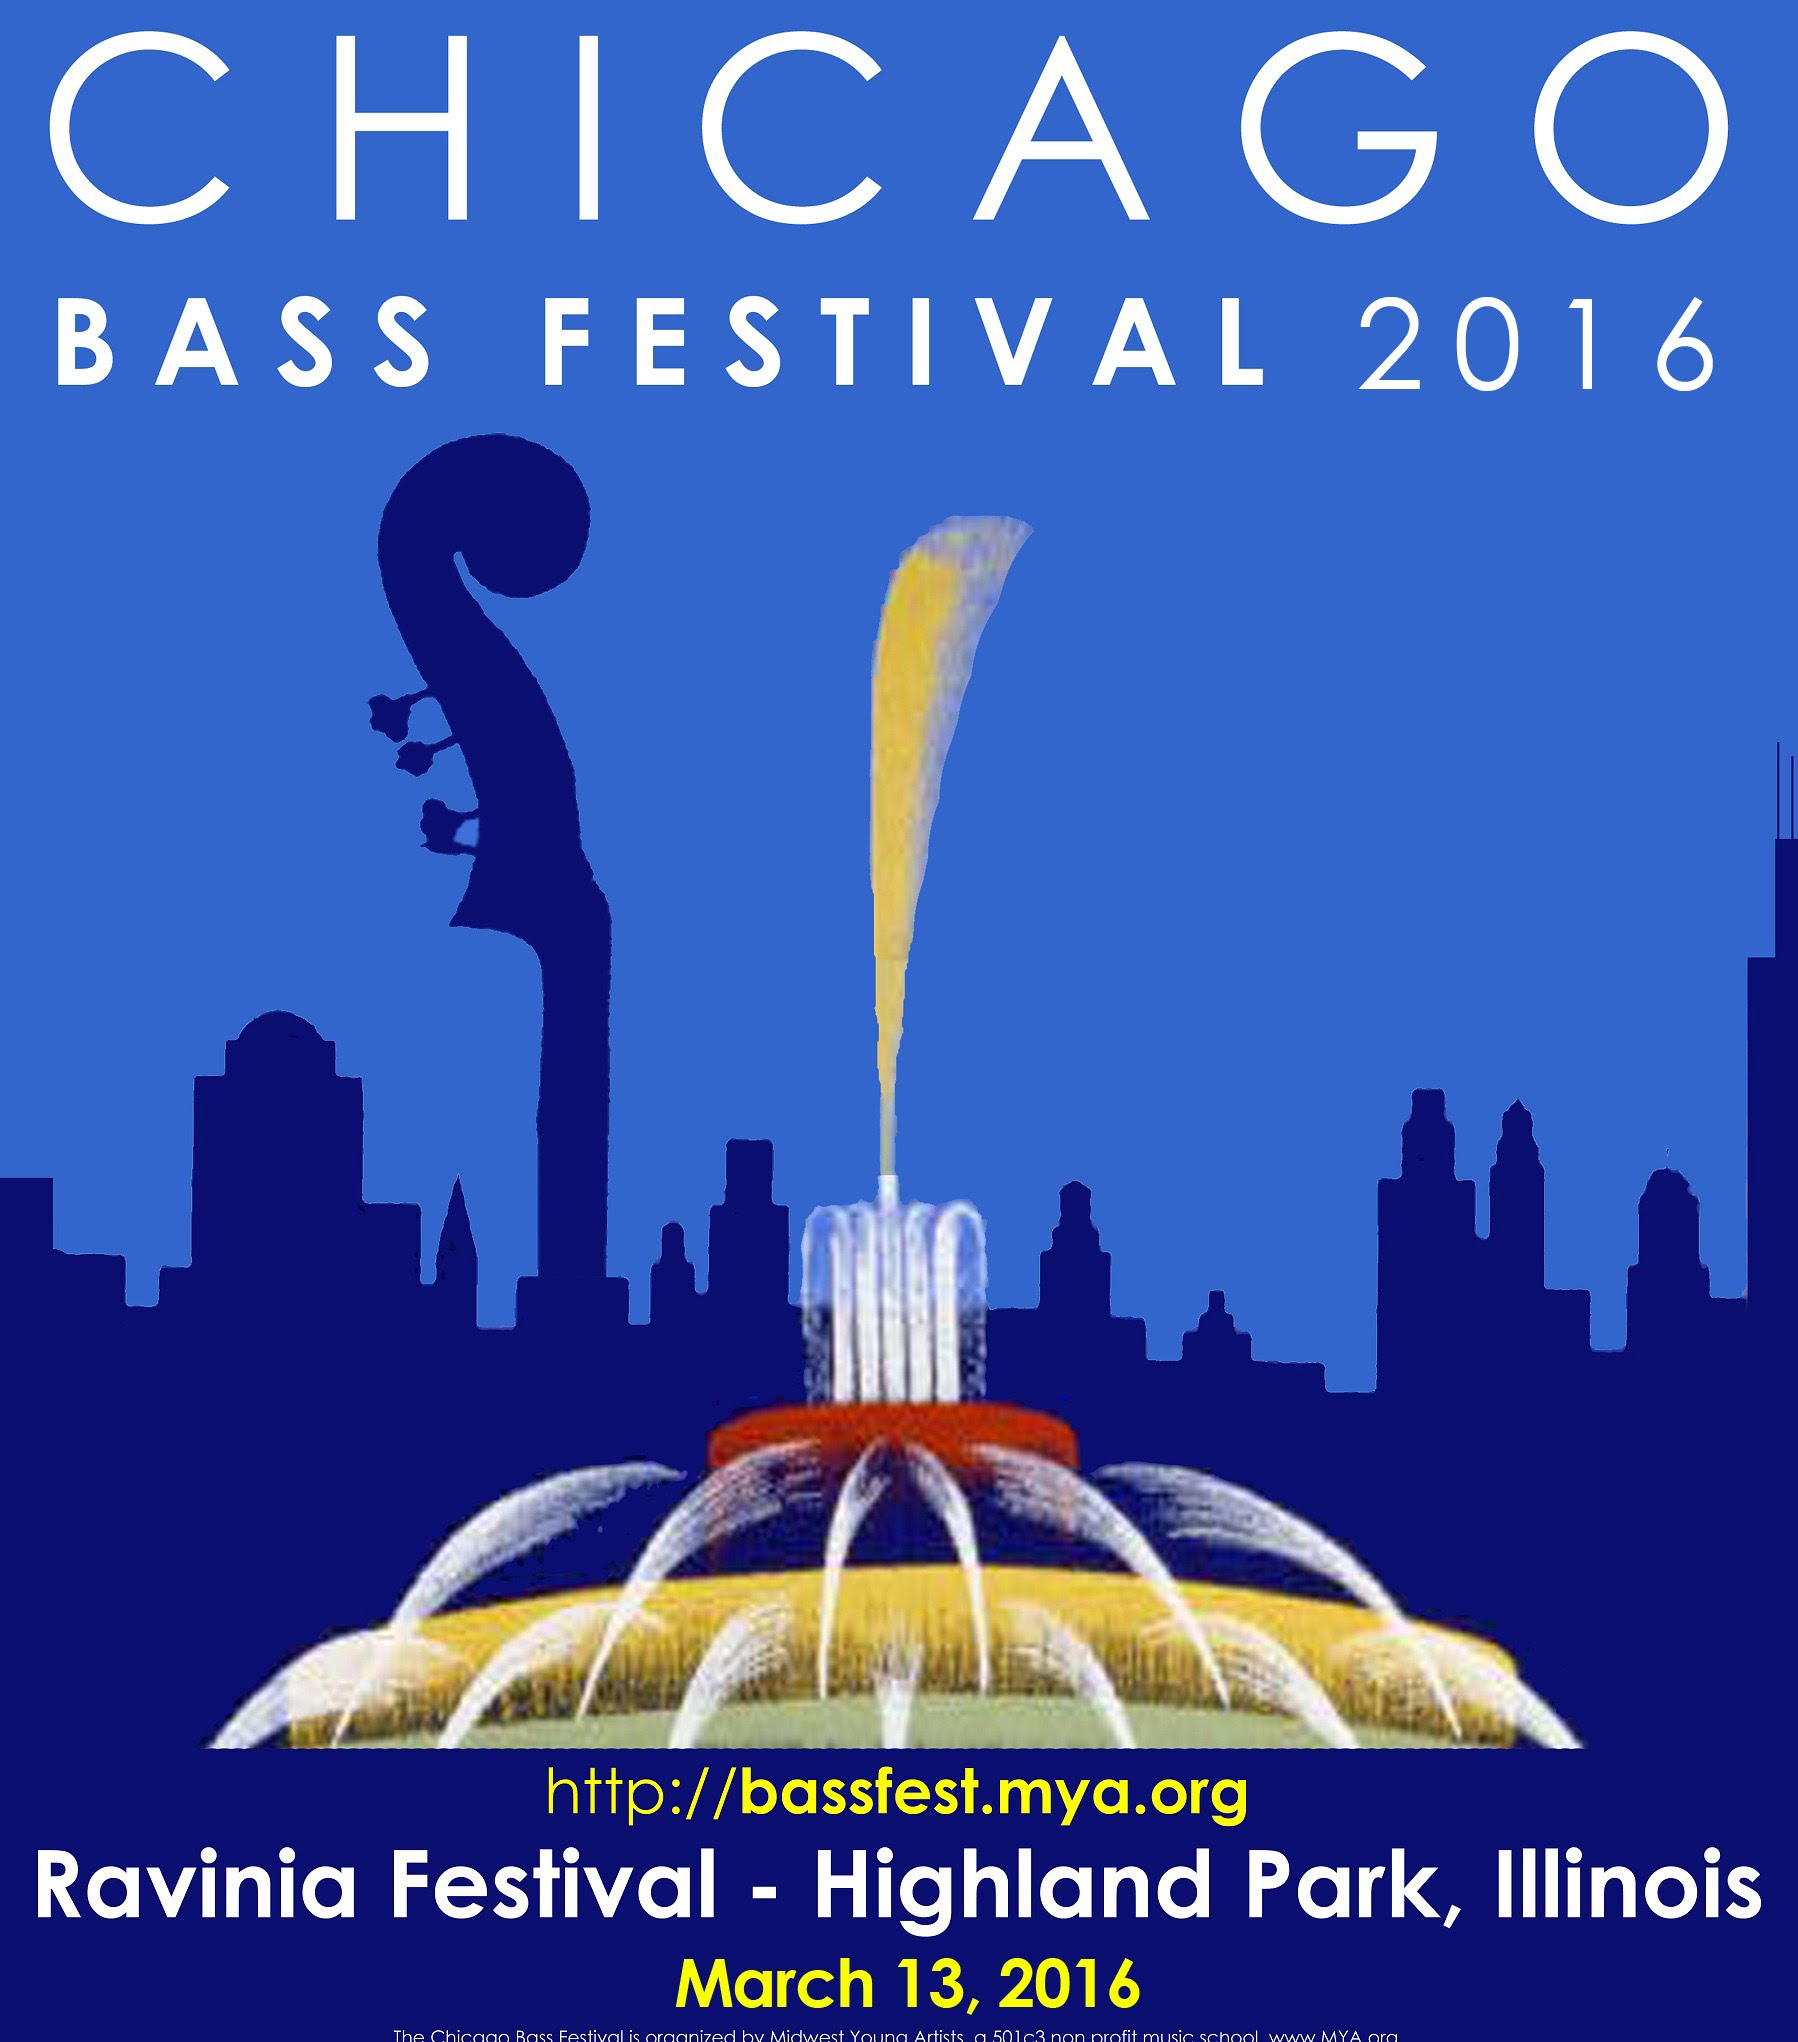 Chicago Bass Festival 2015